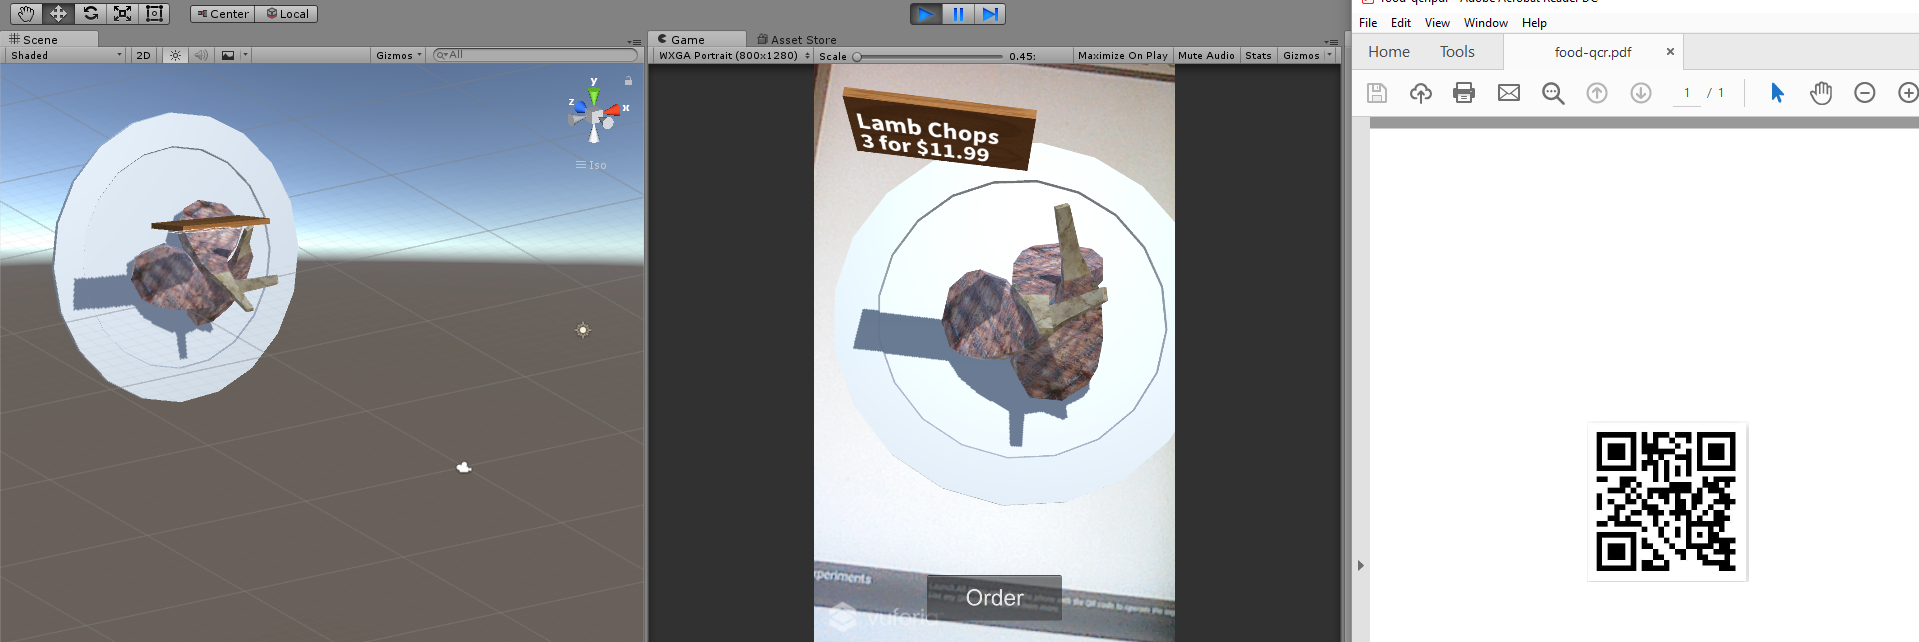 Augmented Reality Restaurant Food Menu App Unity3d Project Android